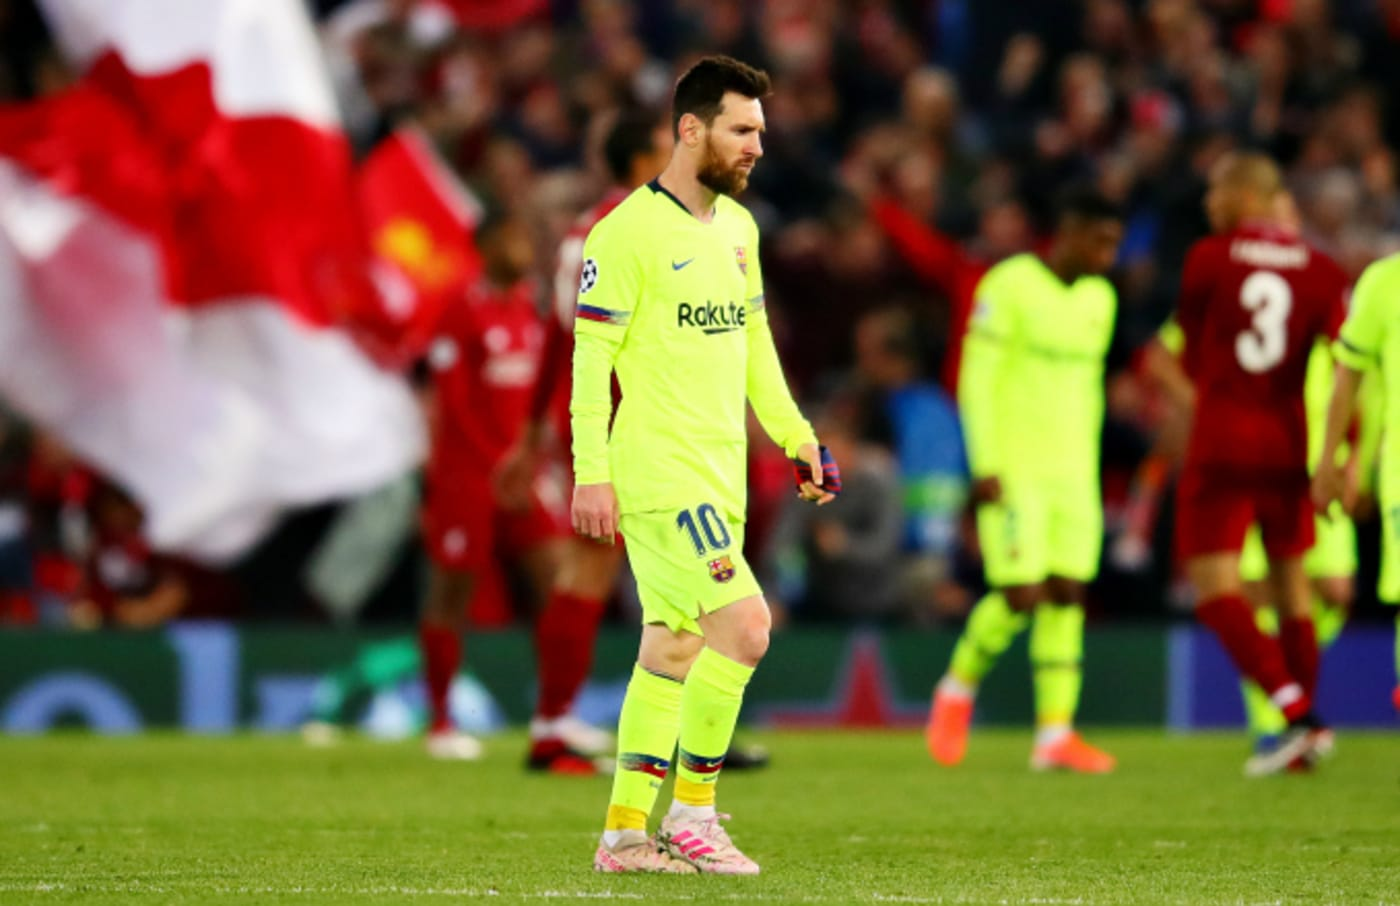 Lionel Messi looks dejected after the UEFA Champions League Semi Final